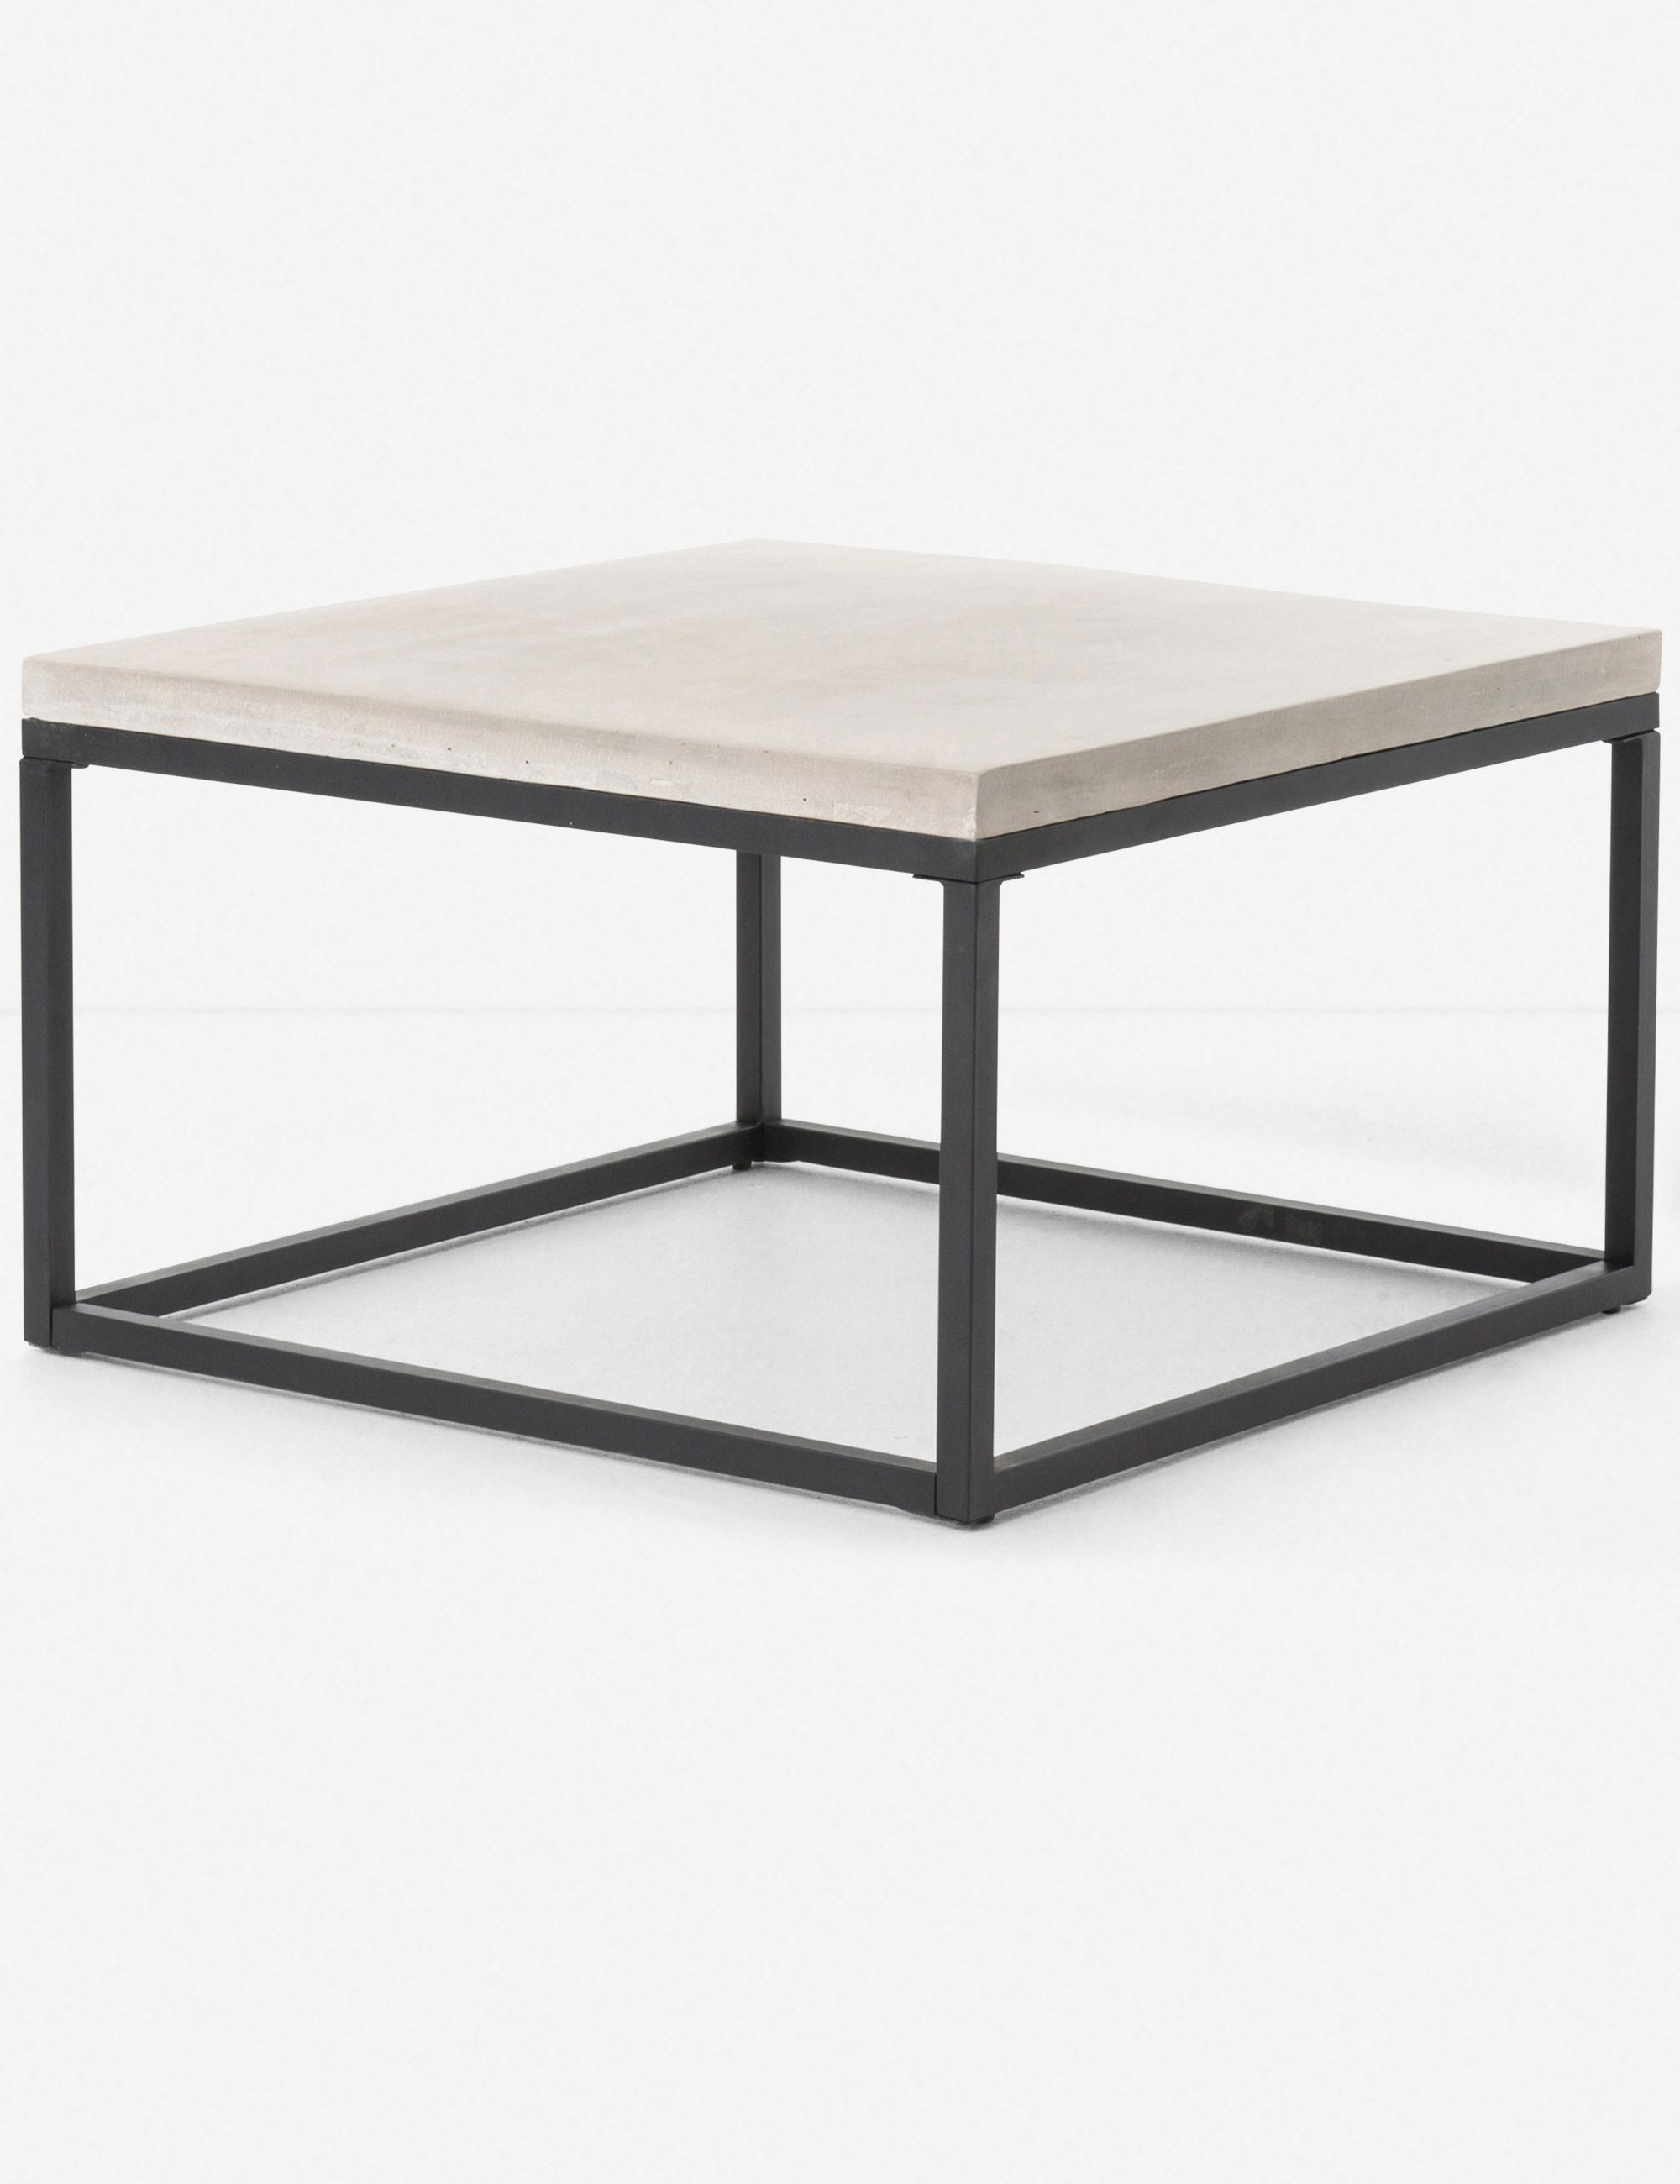 Pin By Kortney On Home Furniture Ideas Coffee Table Square Coffee Table Coffee Table Rectangle [ 2600 x 2000 Pixel ]